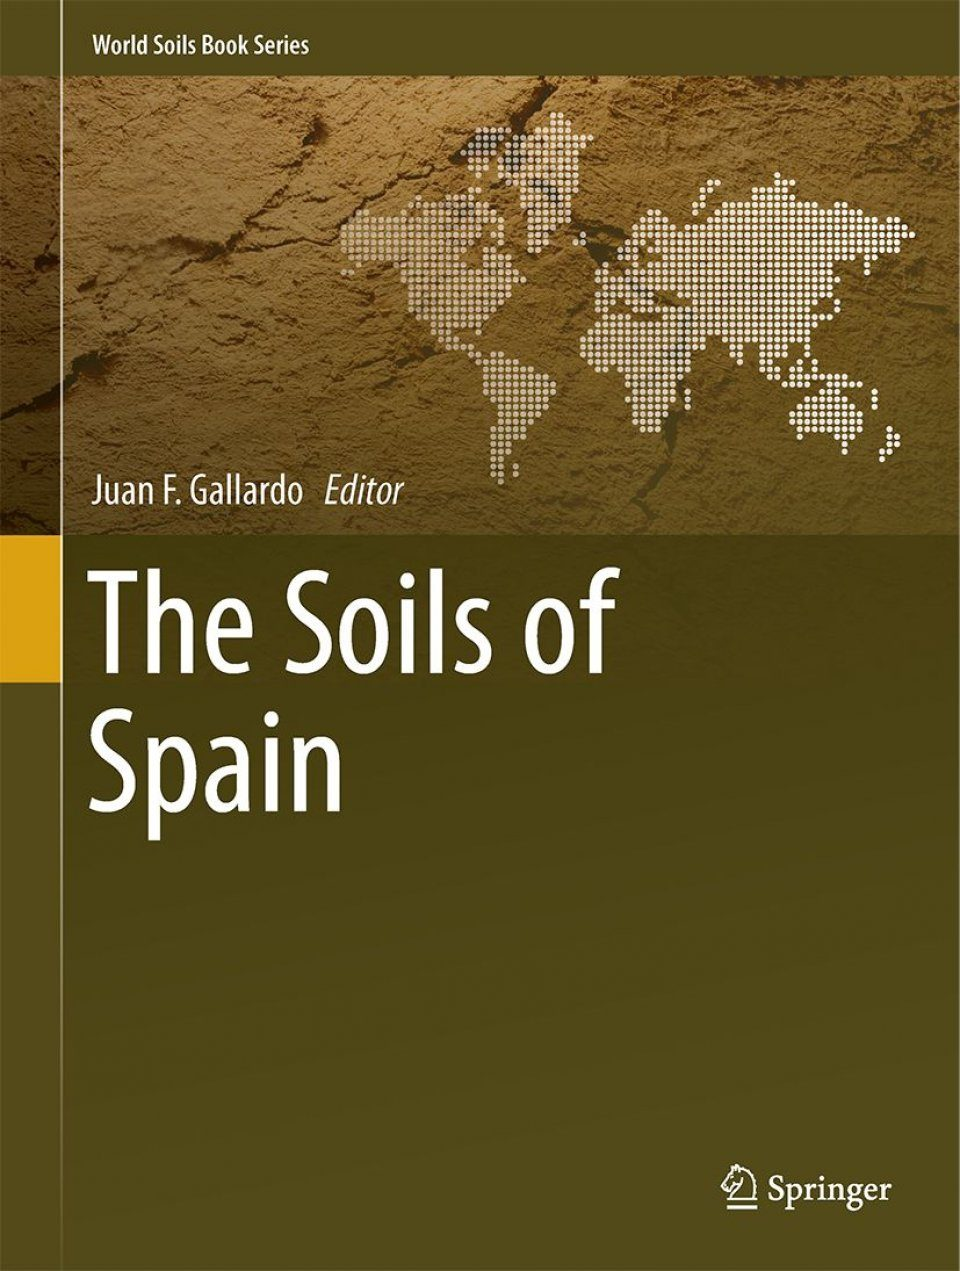 The Soils of Spain